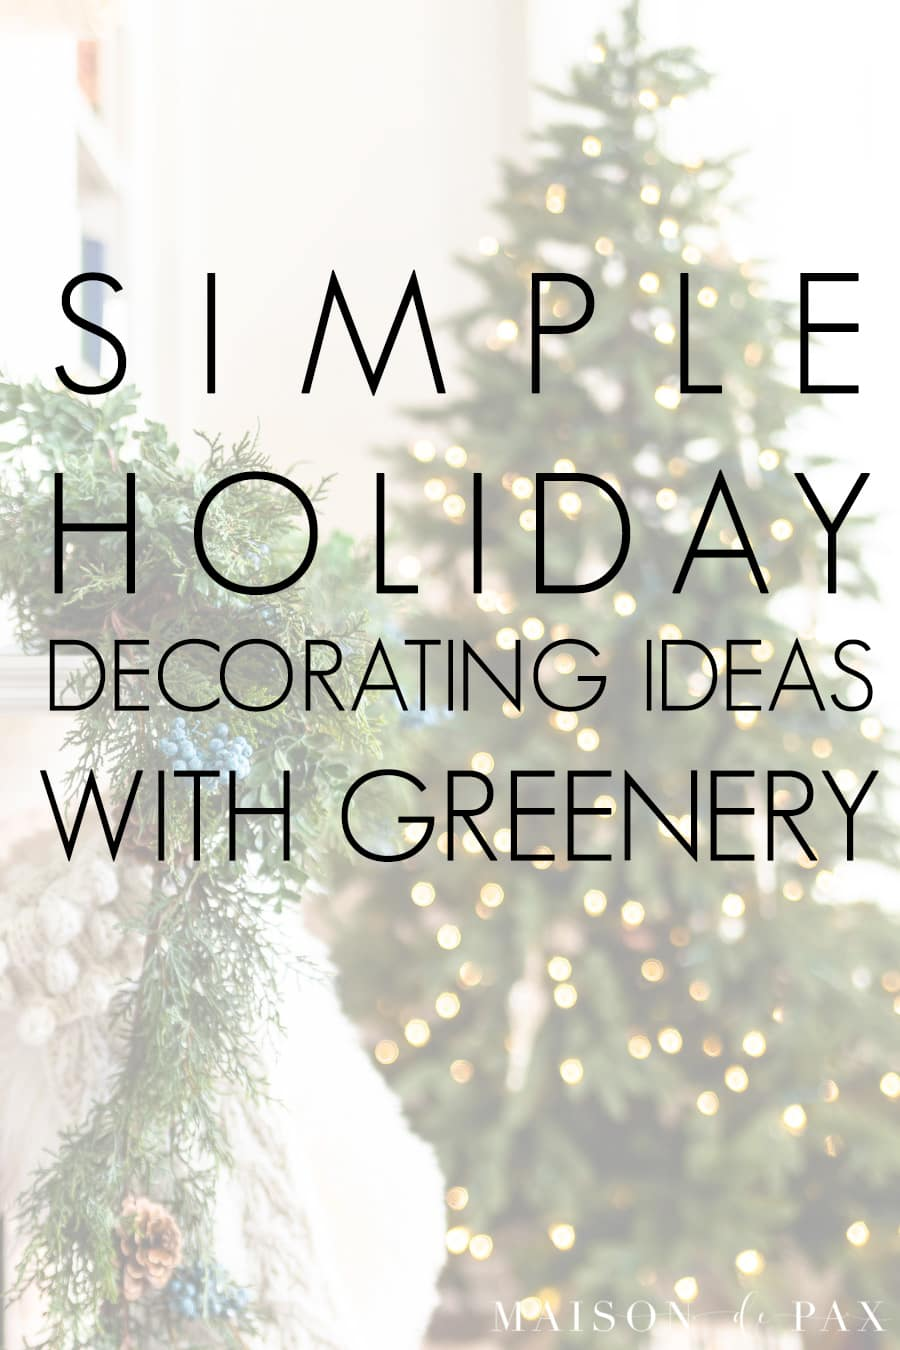 christmas tree in background with overlay: simple holidya decorating ideas with greenery | Maison de Pax